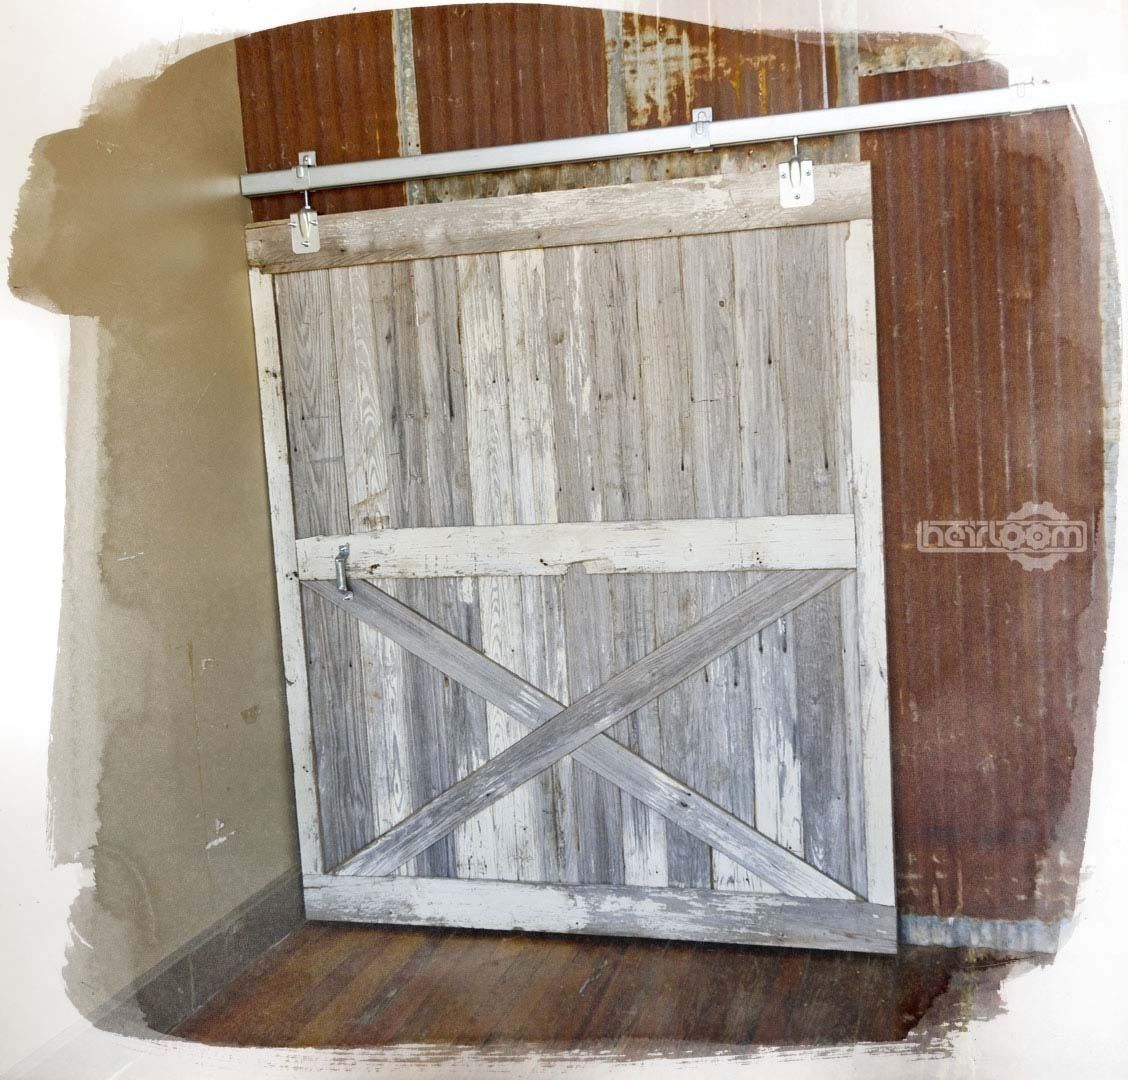 1080 #6B4633  Doors Interior Doors Reclaimed Barn Wood Sliding Barn Door save image Sliding Wood Barn Doors 11271128